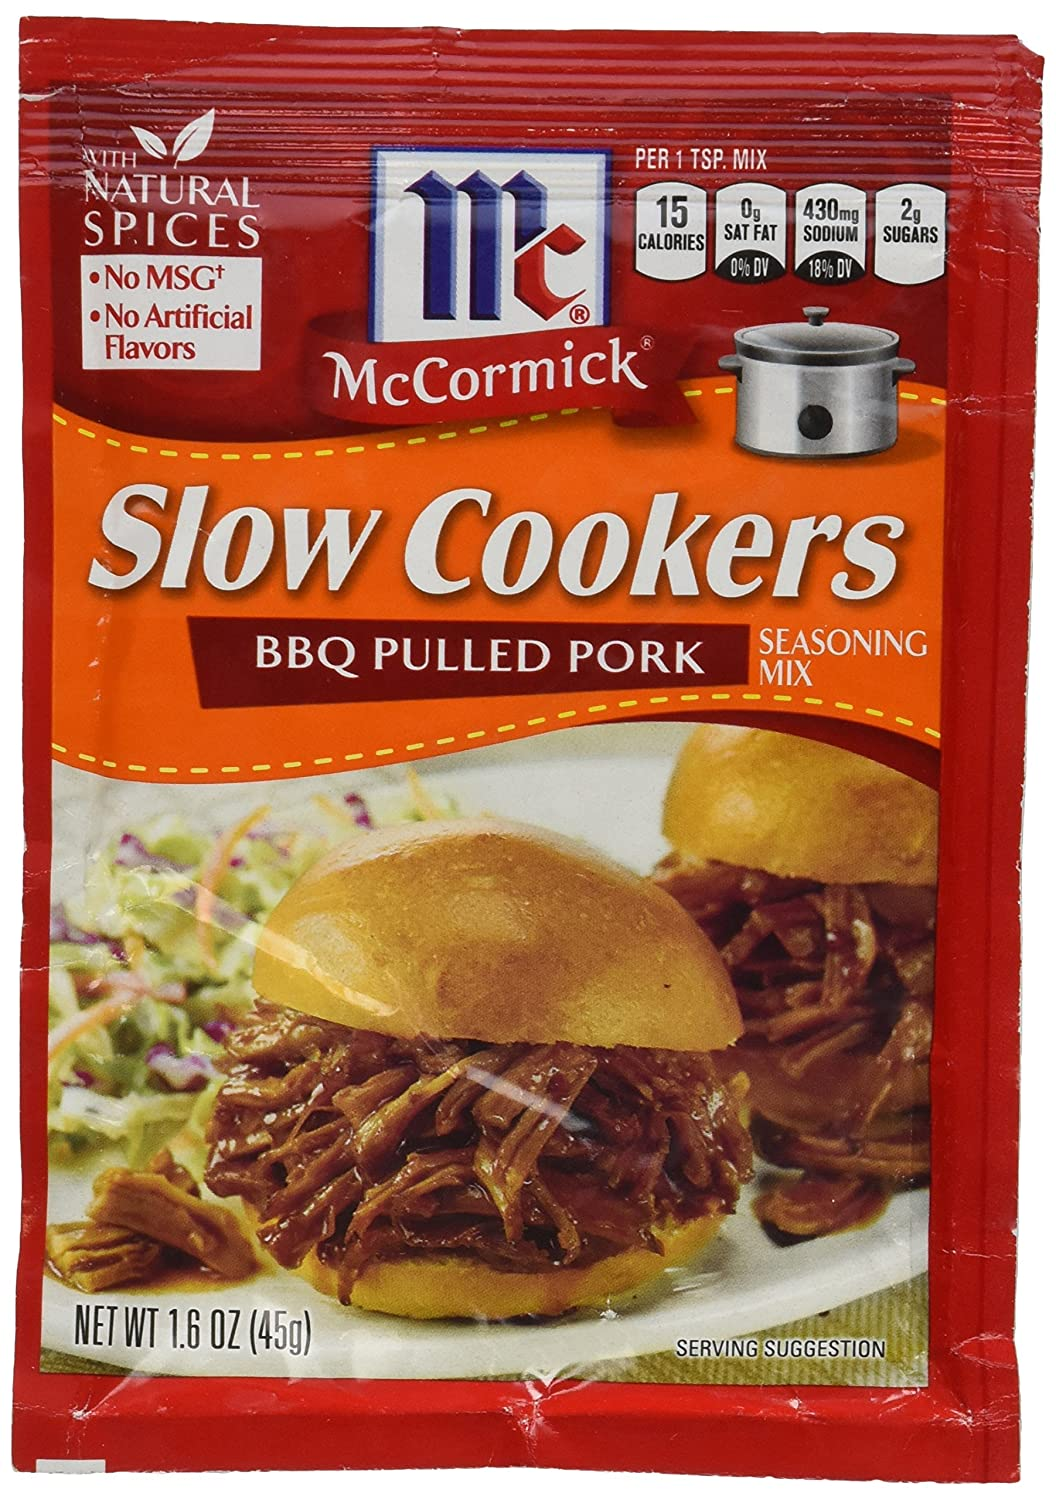 McCormick Slow Cookers: BBQ Pulled Pork (Pack of 4) 1.6 oz Packets